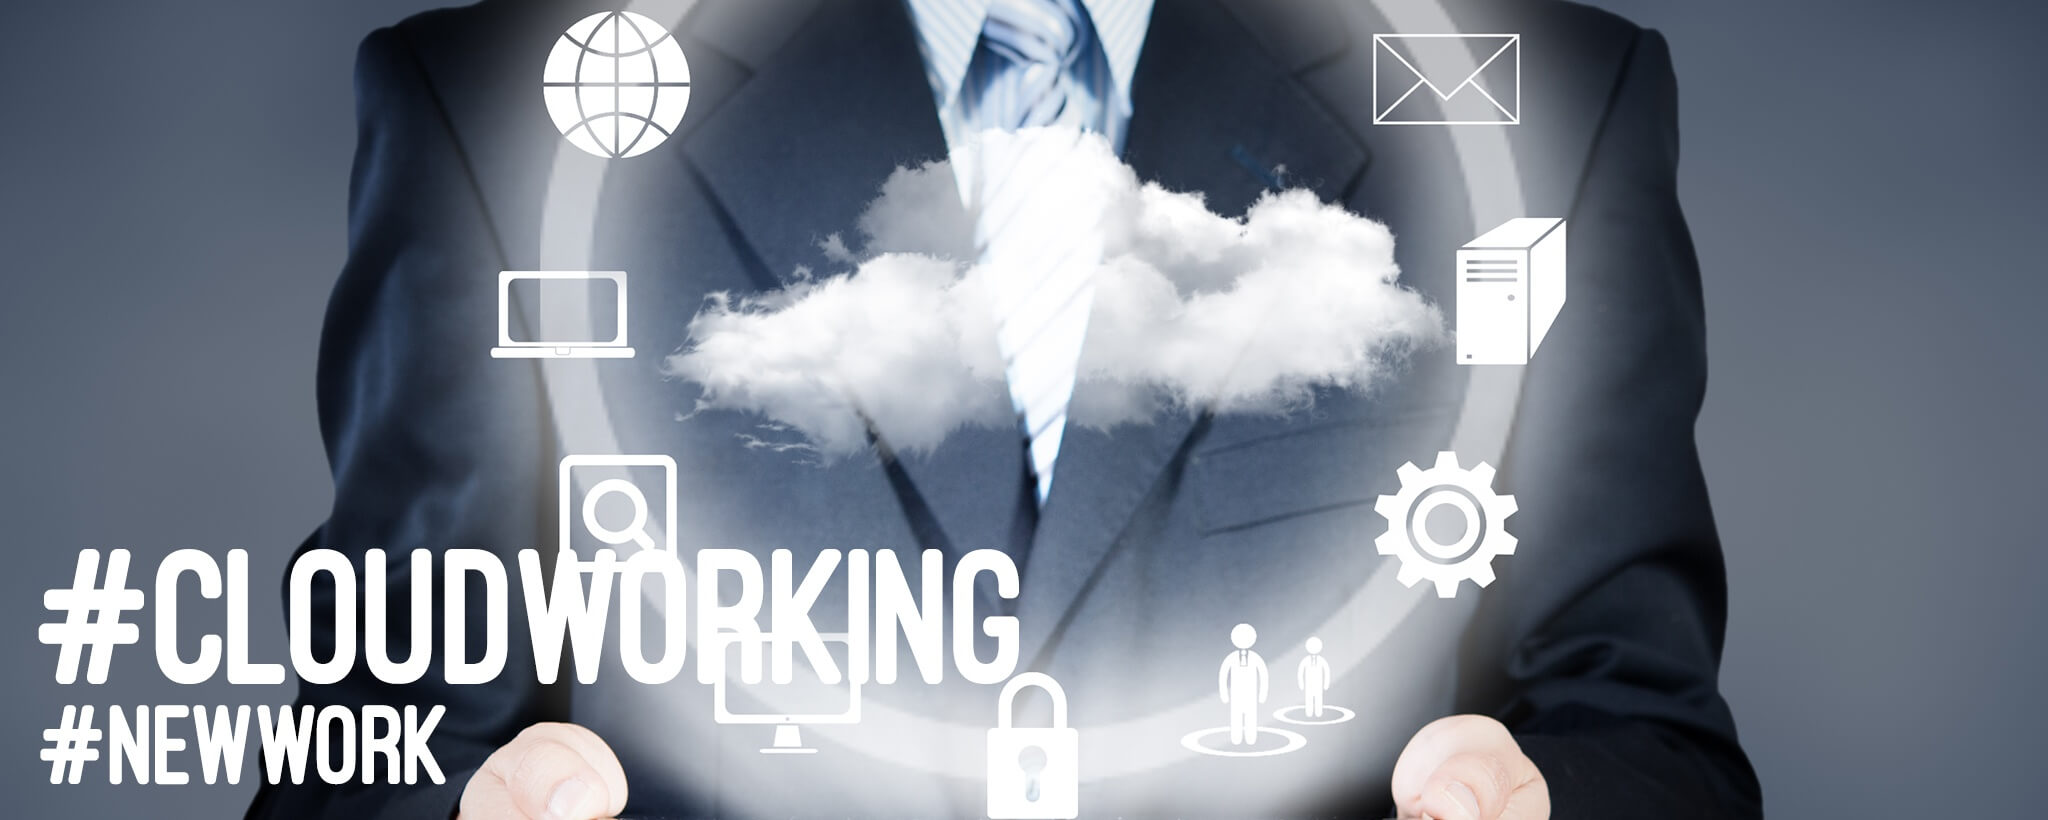 Cloud-Working: Das Global Village wird zum Homeoffice